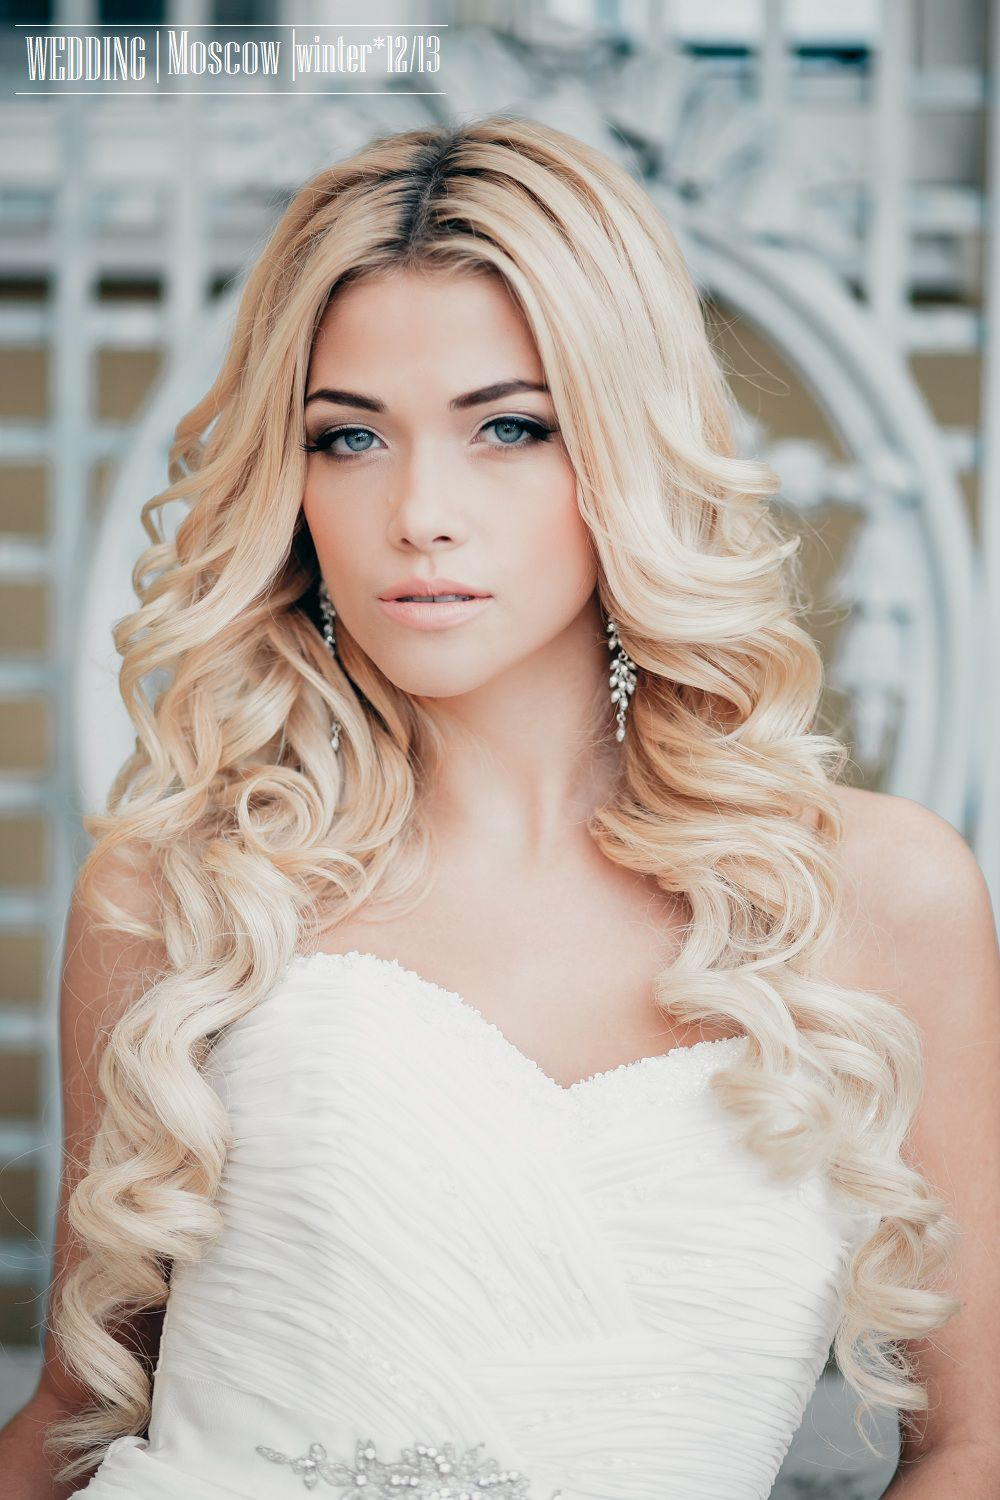 long hairstyles wedding day wedding photography website